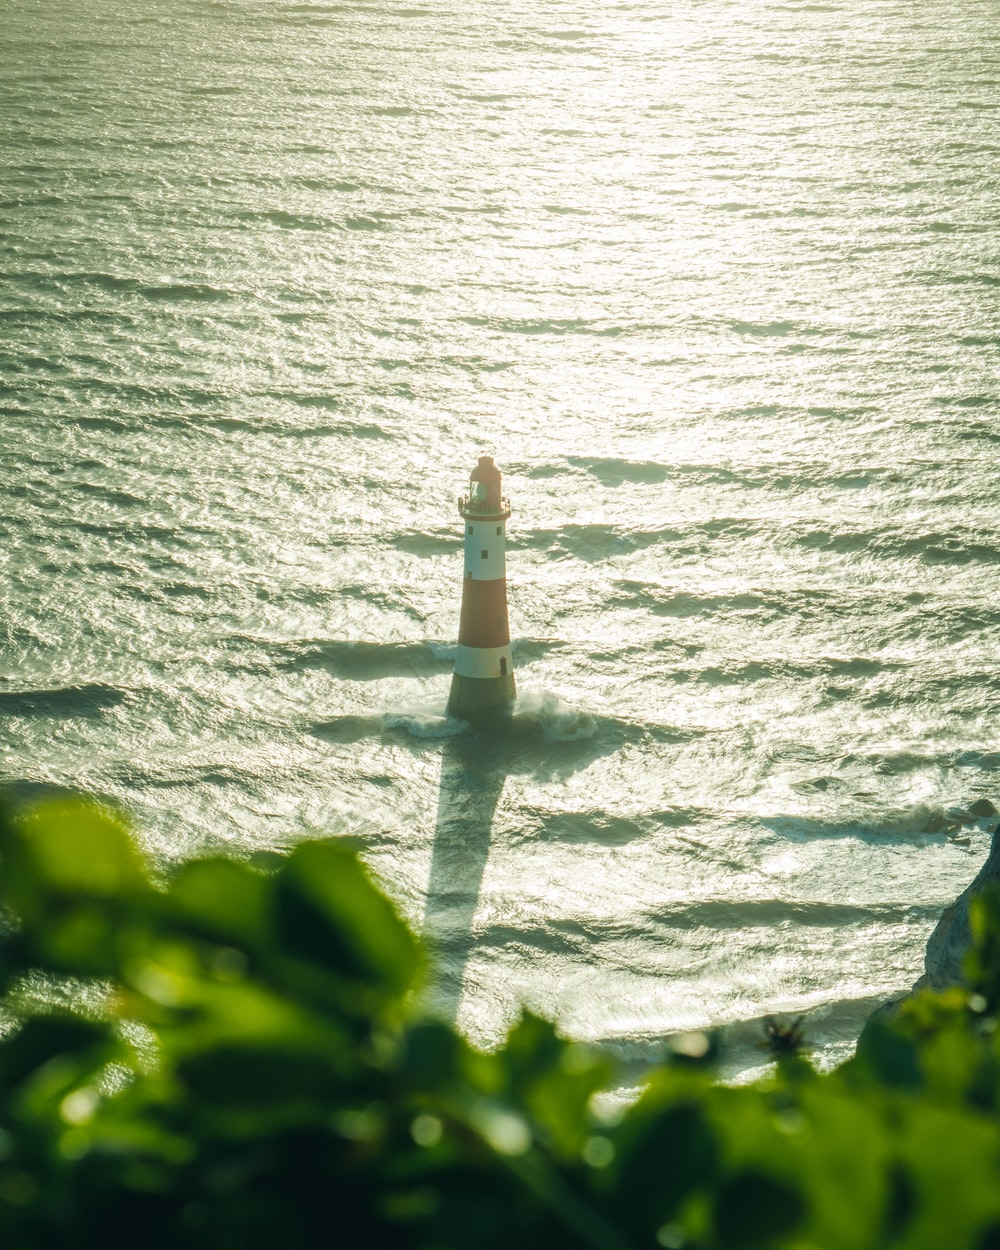 white and brown lighthouse near body of water during daytime